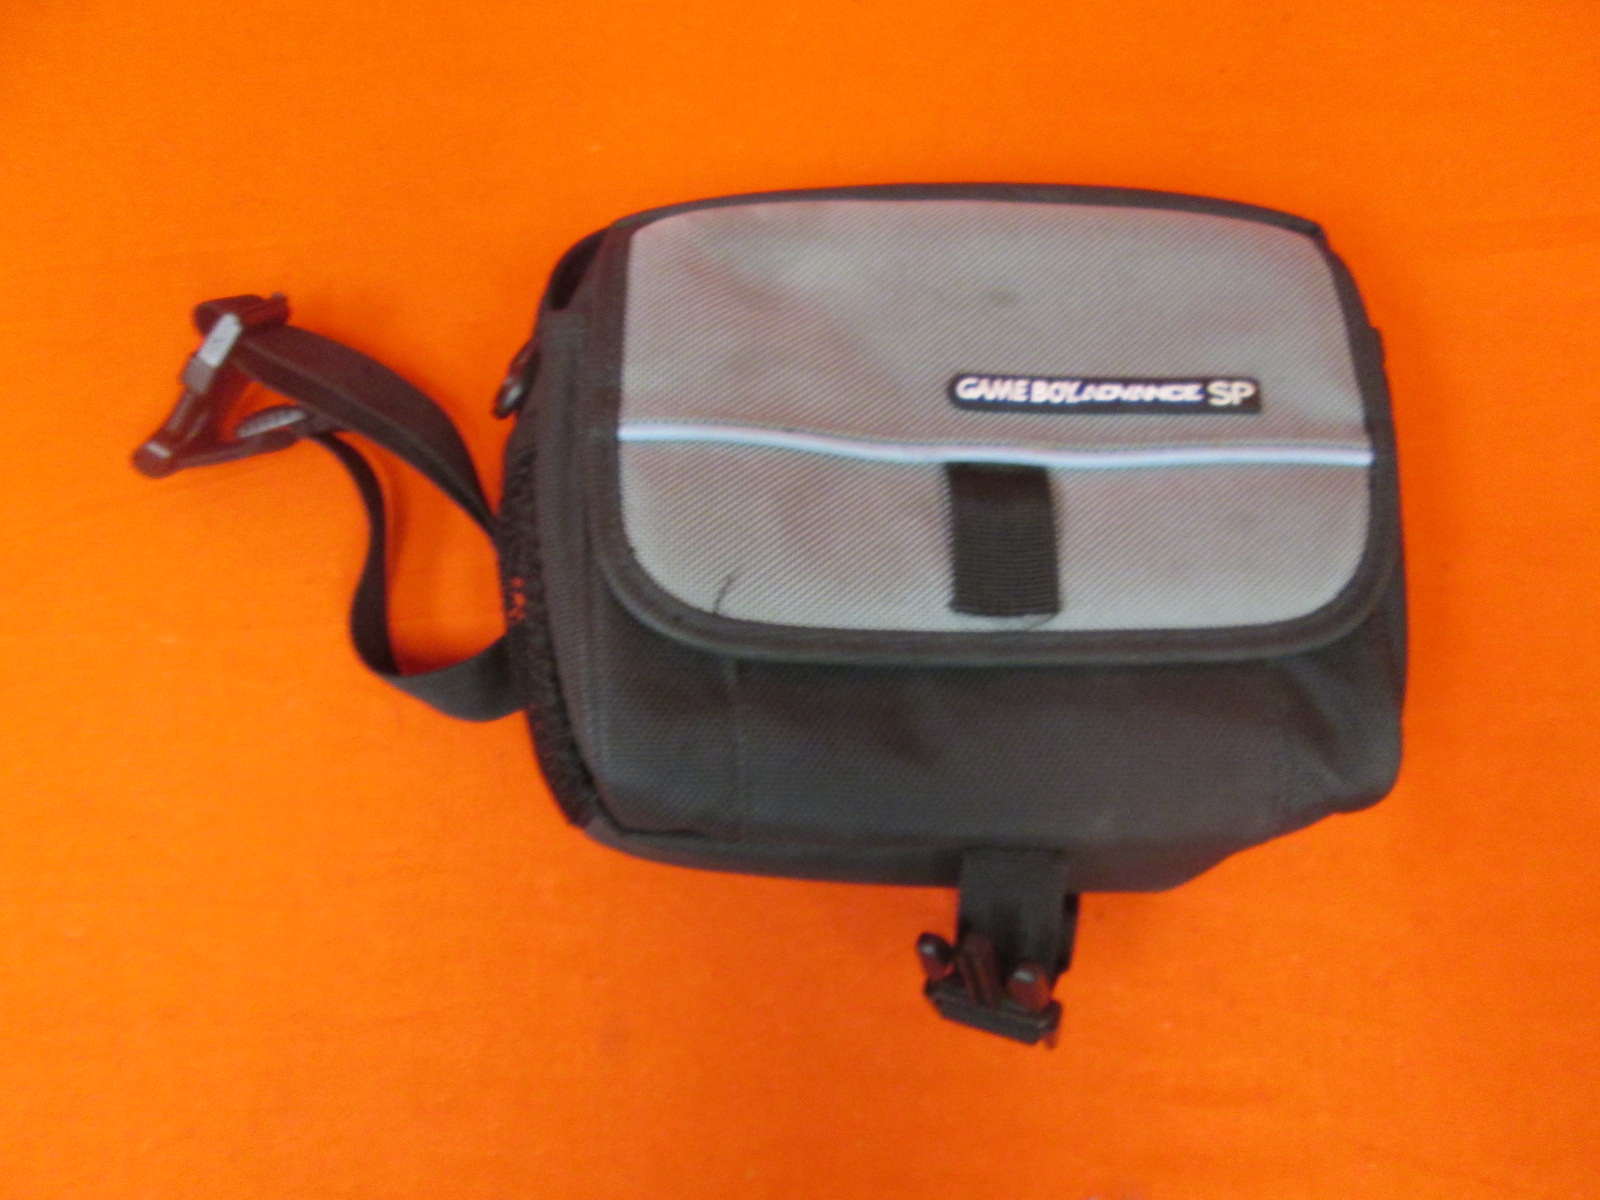 Image 0 of Video Game Travel Case For Gameboy Advance SP Black And Grey